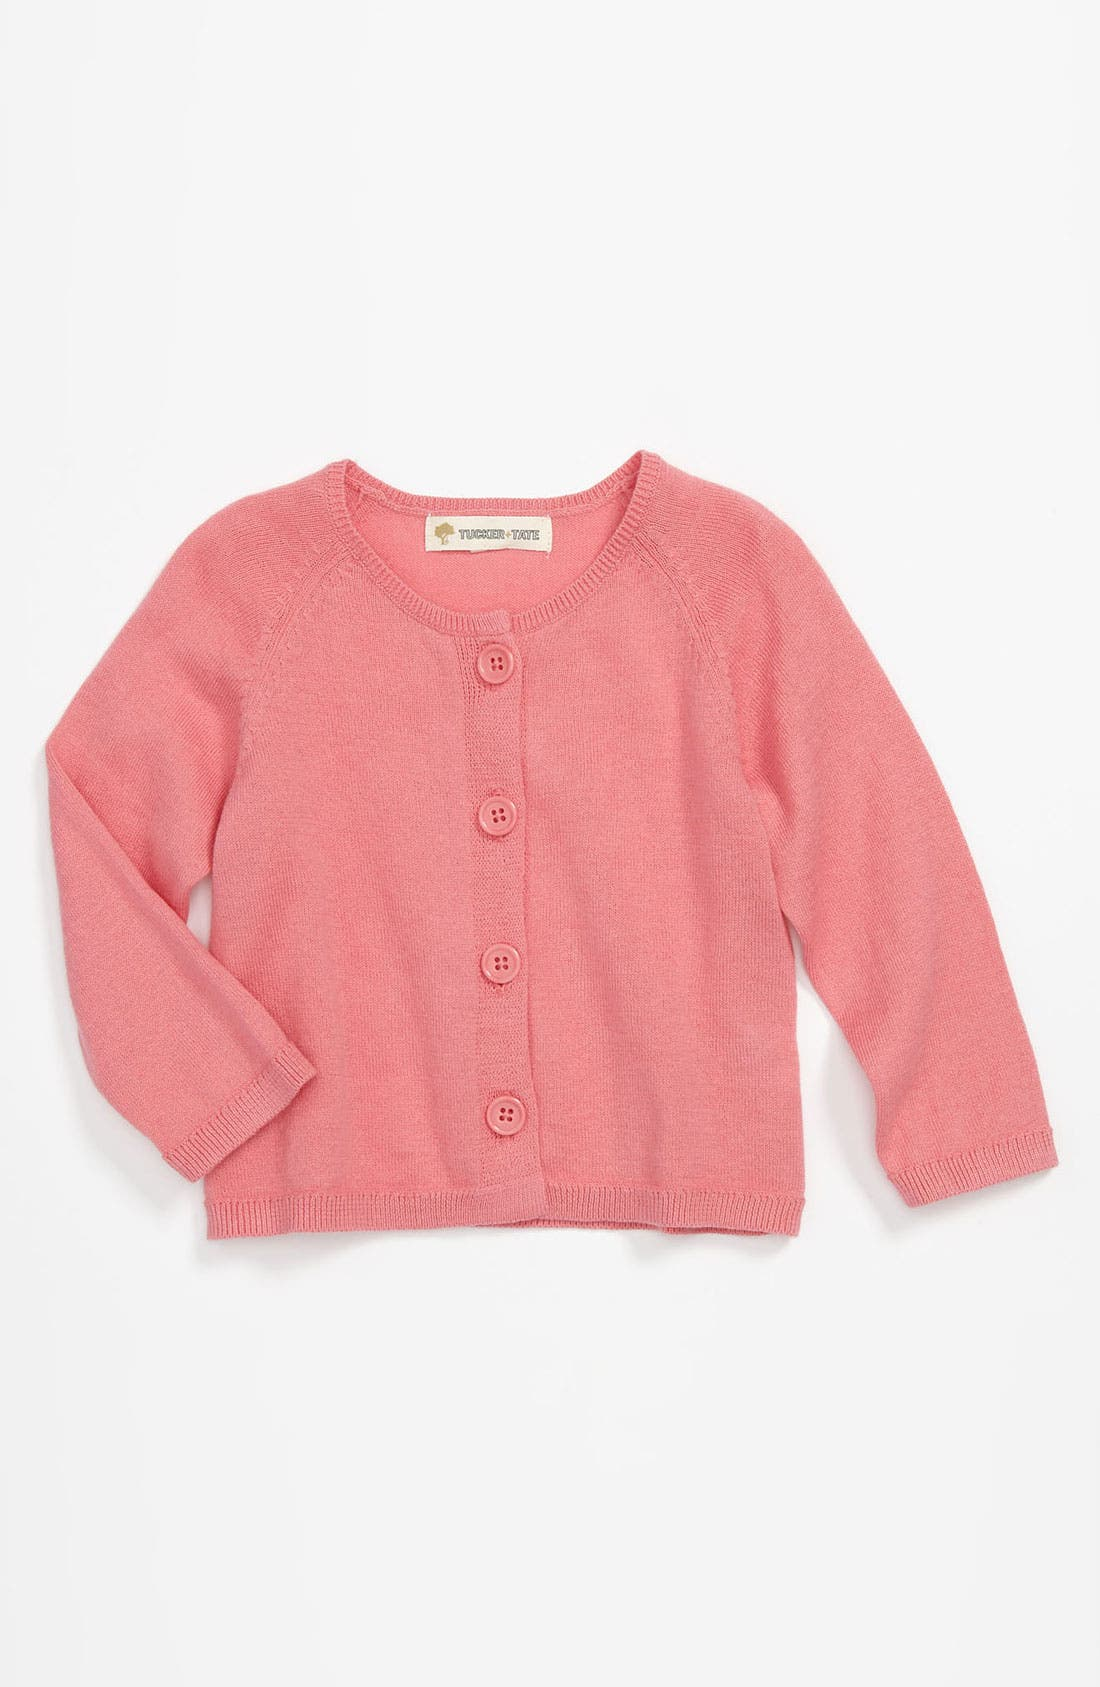 Alternate Image 1 Selected - Tucker + Tate 'Amber' Cardigan (Toddler)